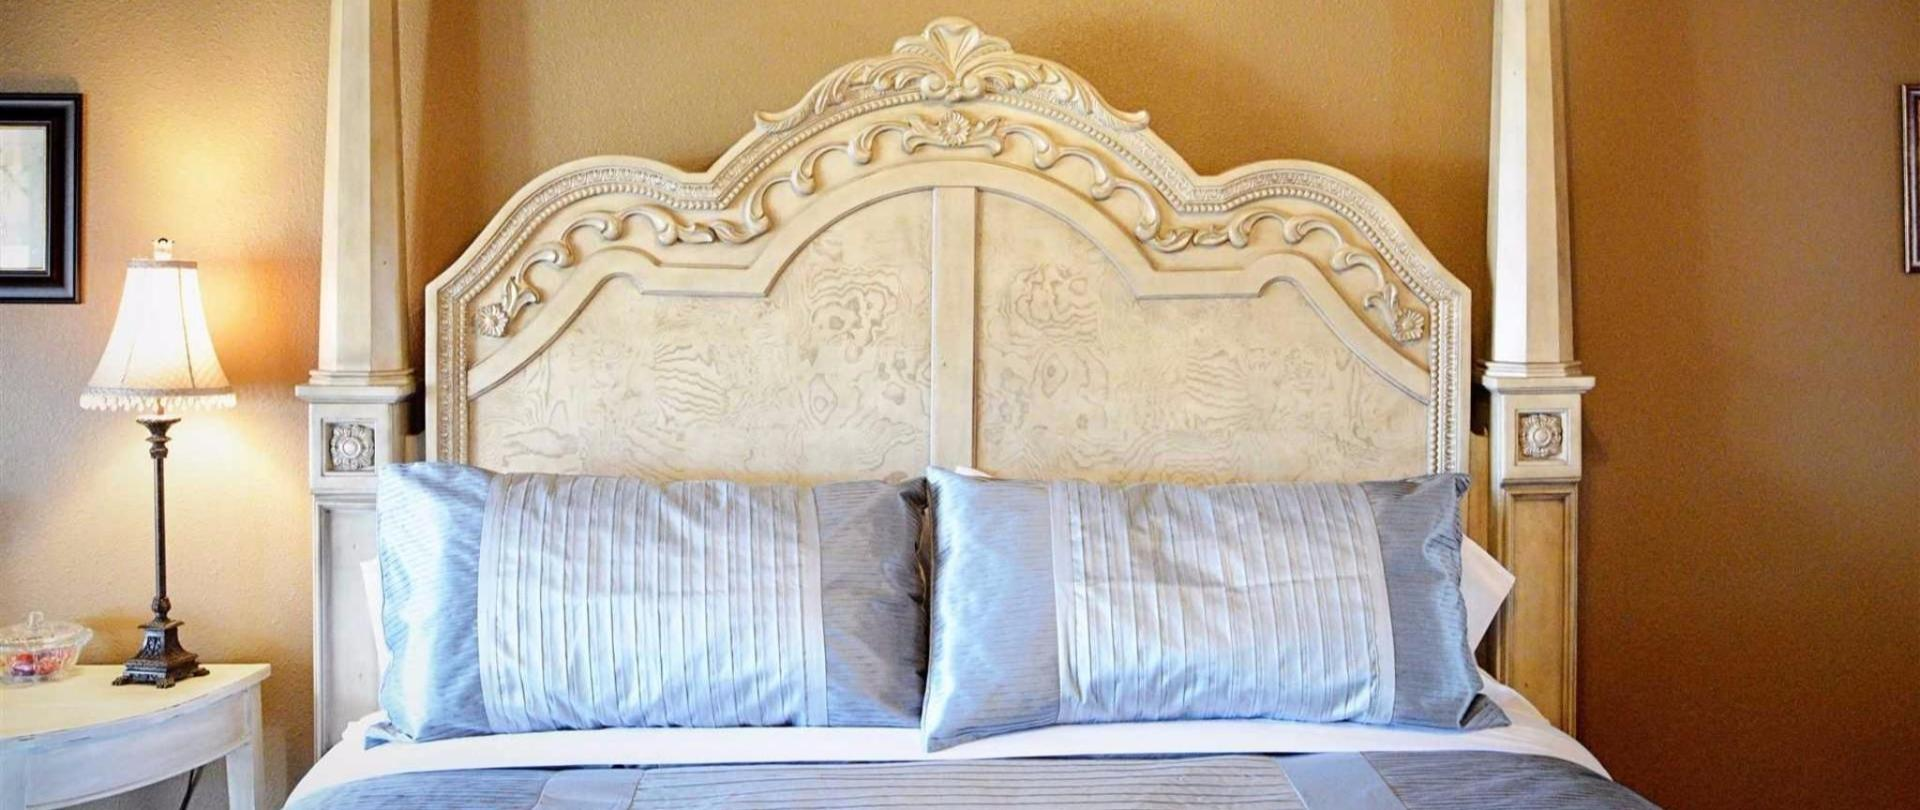 josephine-s-suite-majestic-king-bed-headboard-with-vera-wang-bed-linens-at-iron-horse-inn.jpg.1920x0.jpg